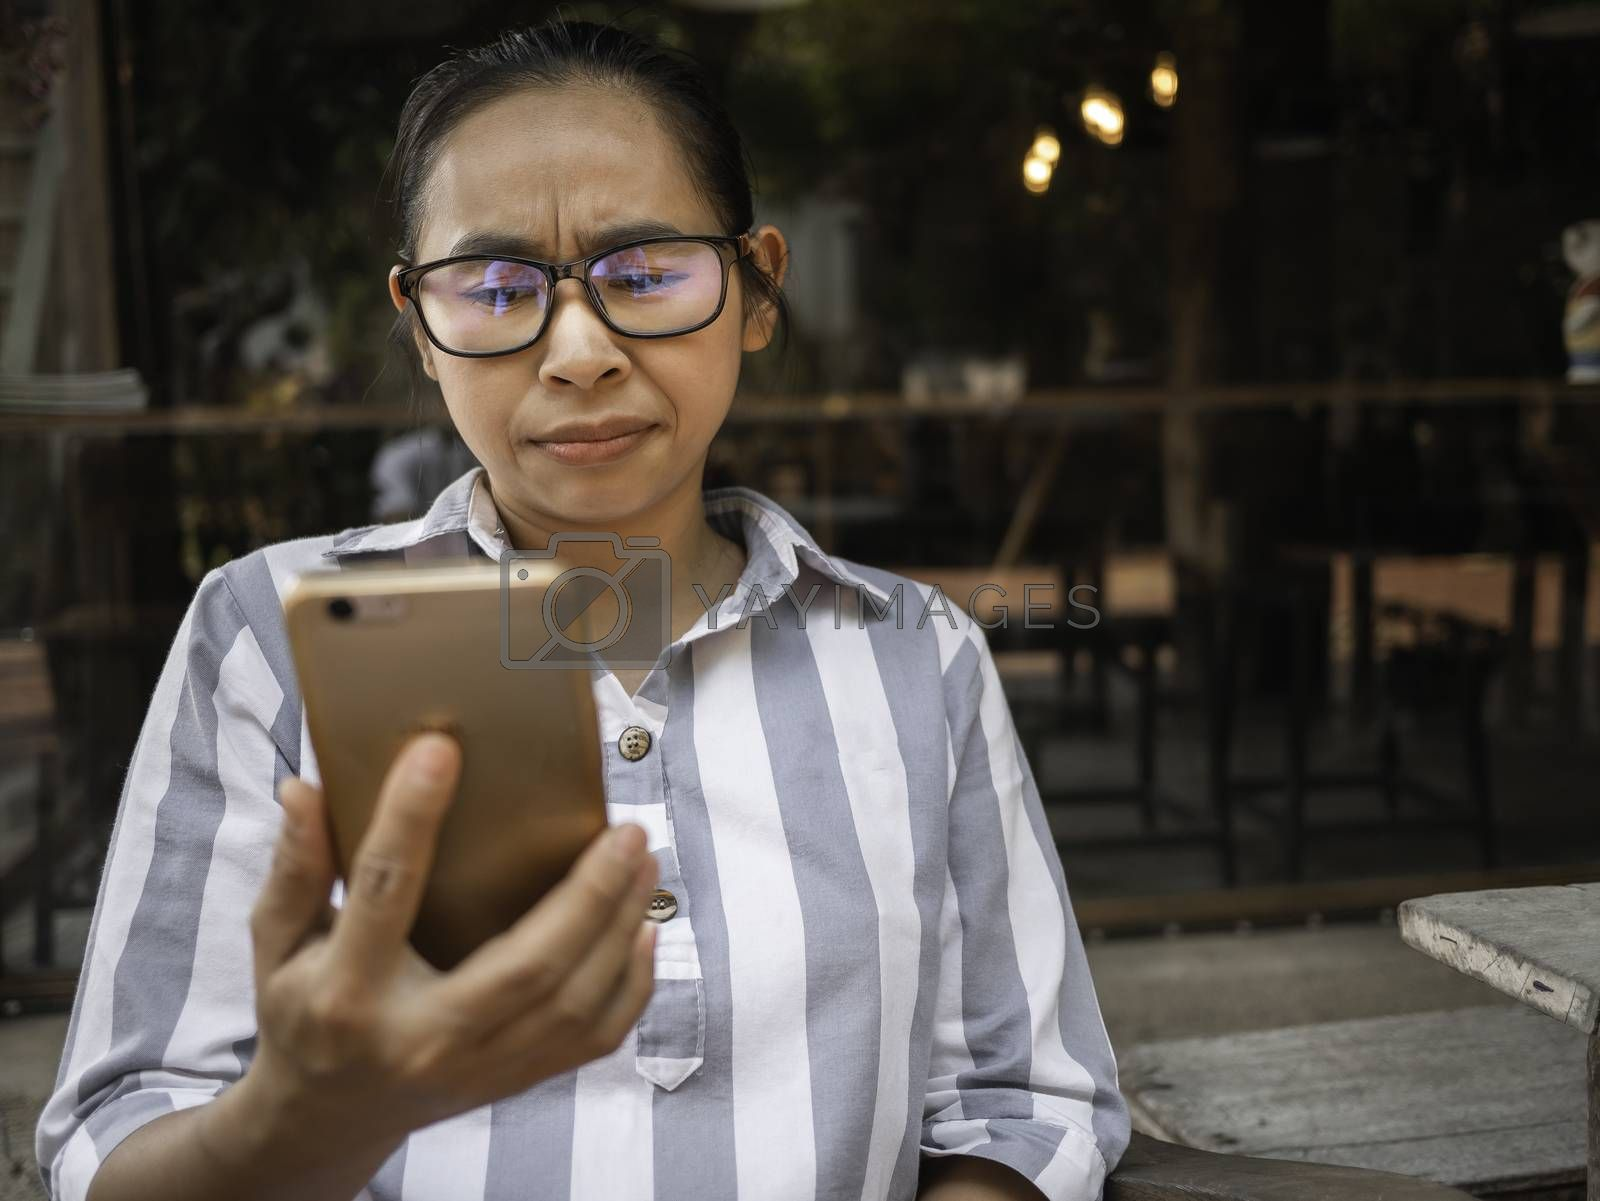 Stressed Asian women sitting on wooden chair with smartphone in coffee cafe. Health and medical concept. by TEERASAK